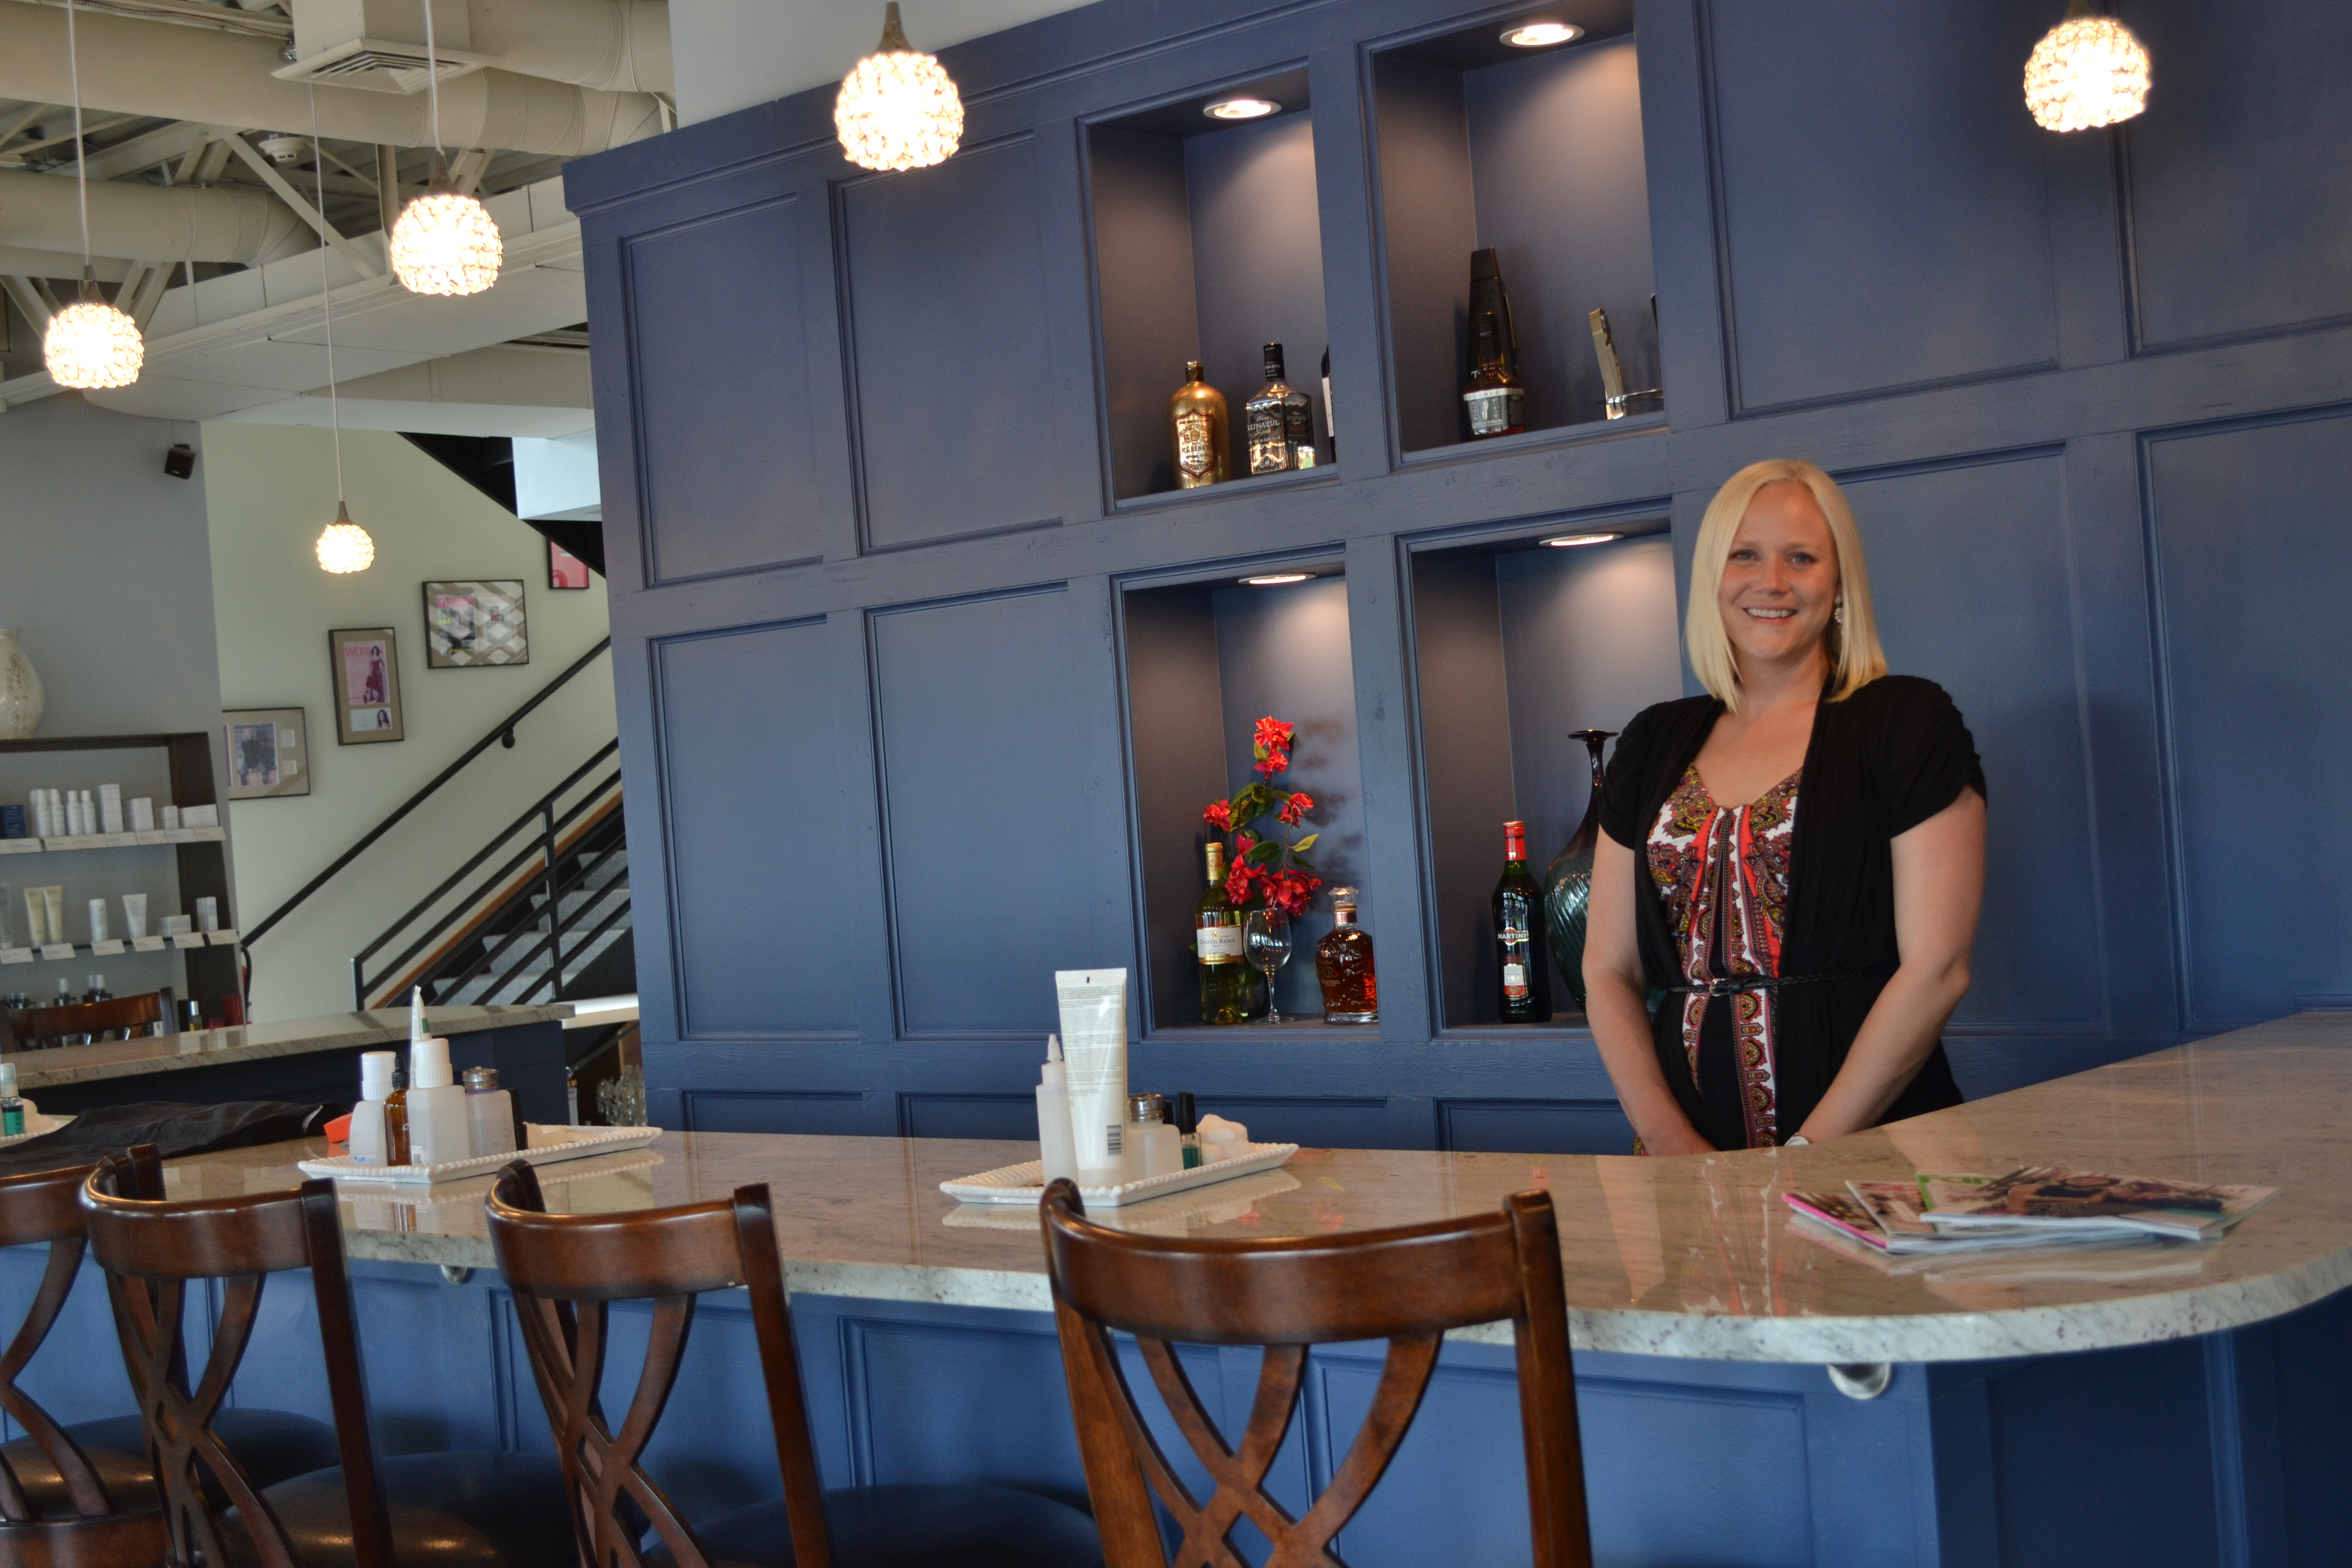 Erin Hunt, owner of Beauty Bar at Geist behind the bar at her new salon. (Photo by Ann Craig-Cinnamon)